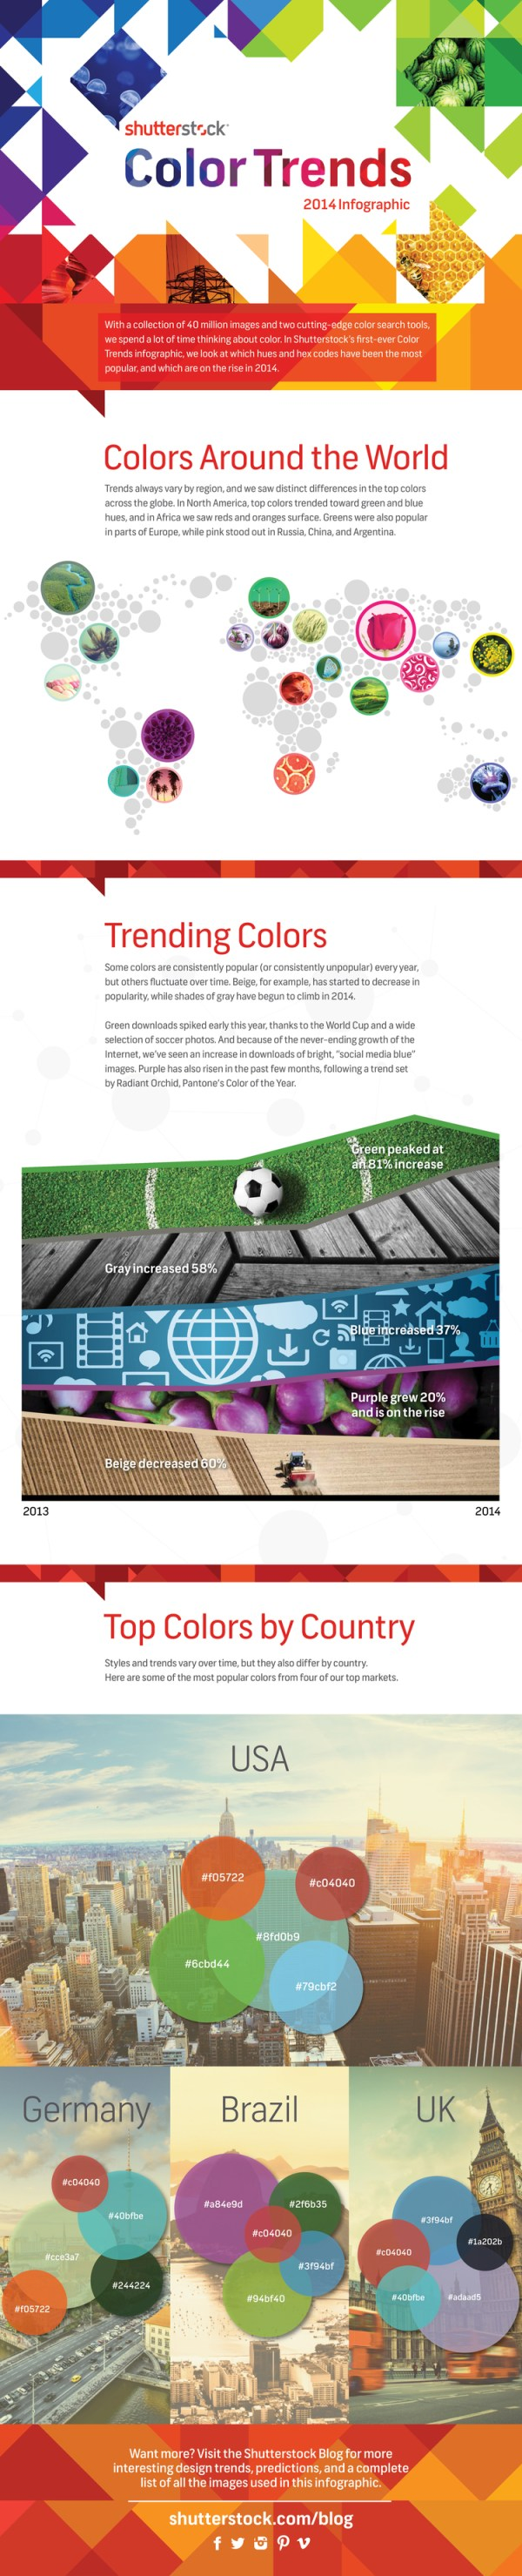 Color Trends 2014 Infographic